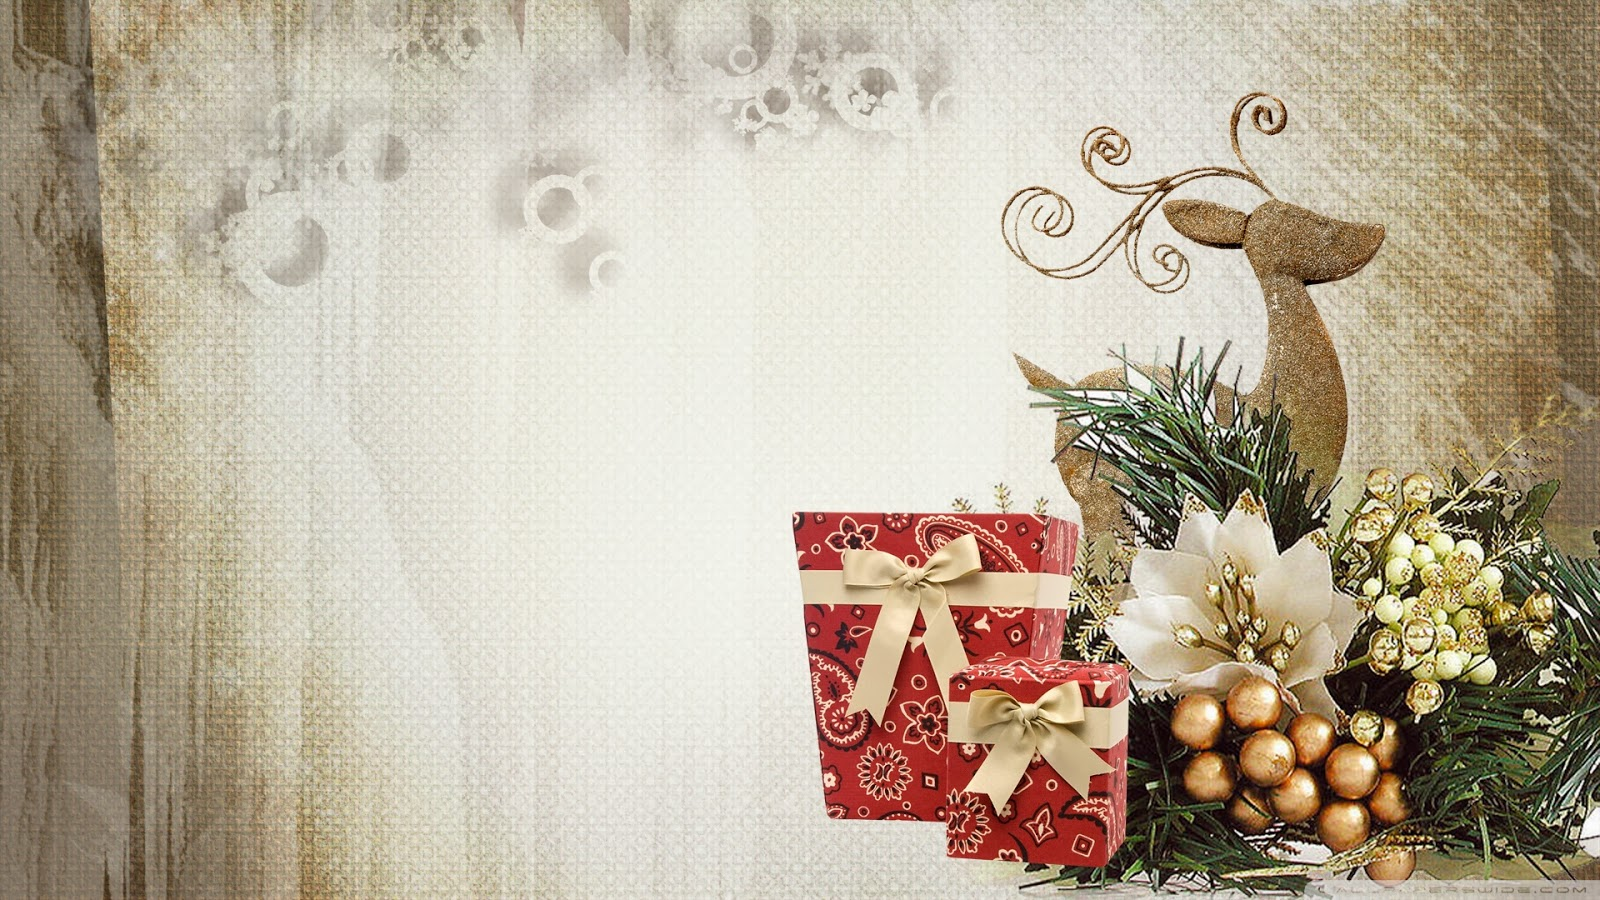 New Year 2014 Hd Wallpapers Cgfrog 50 Elegant Hd Wallpapers Of Christmas For Mobile